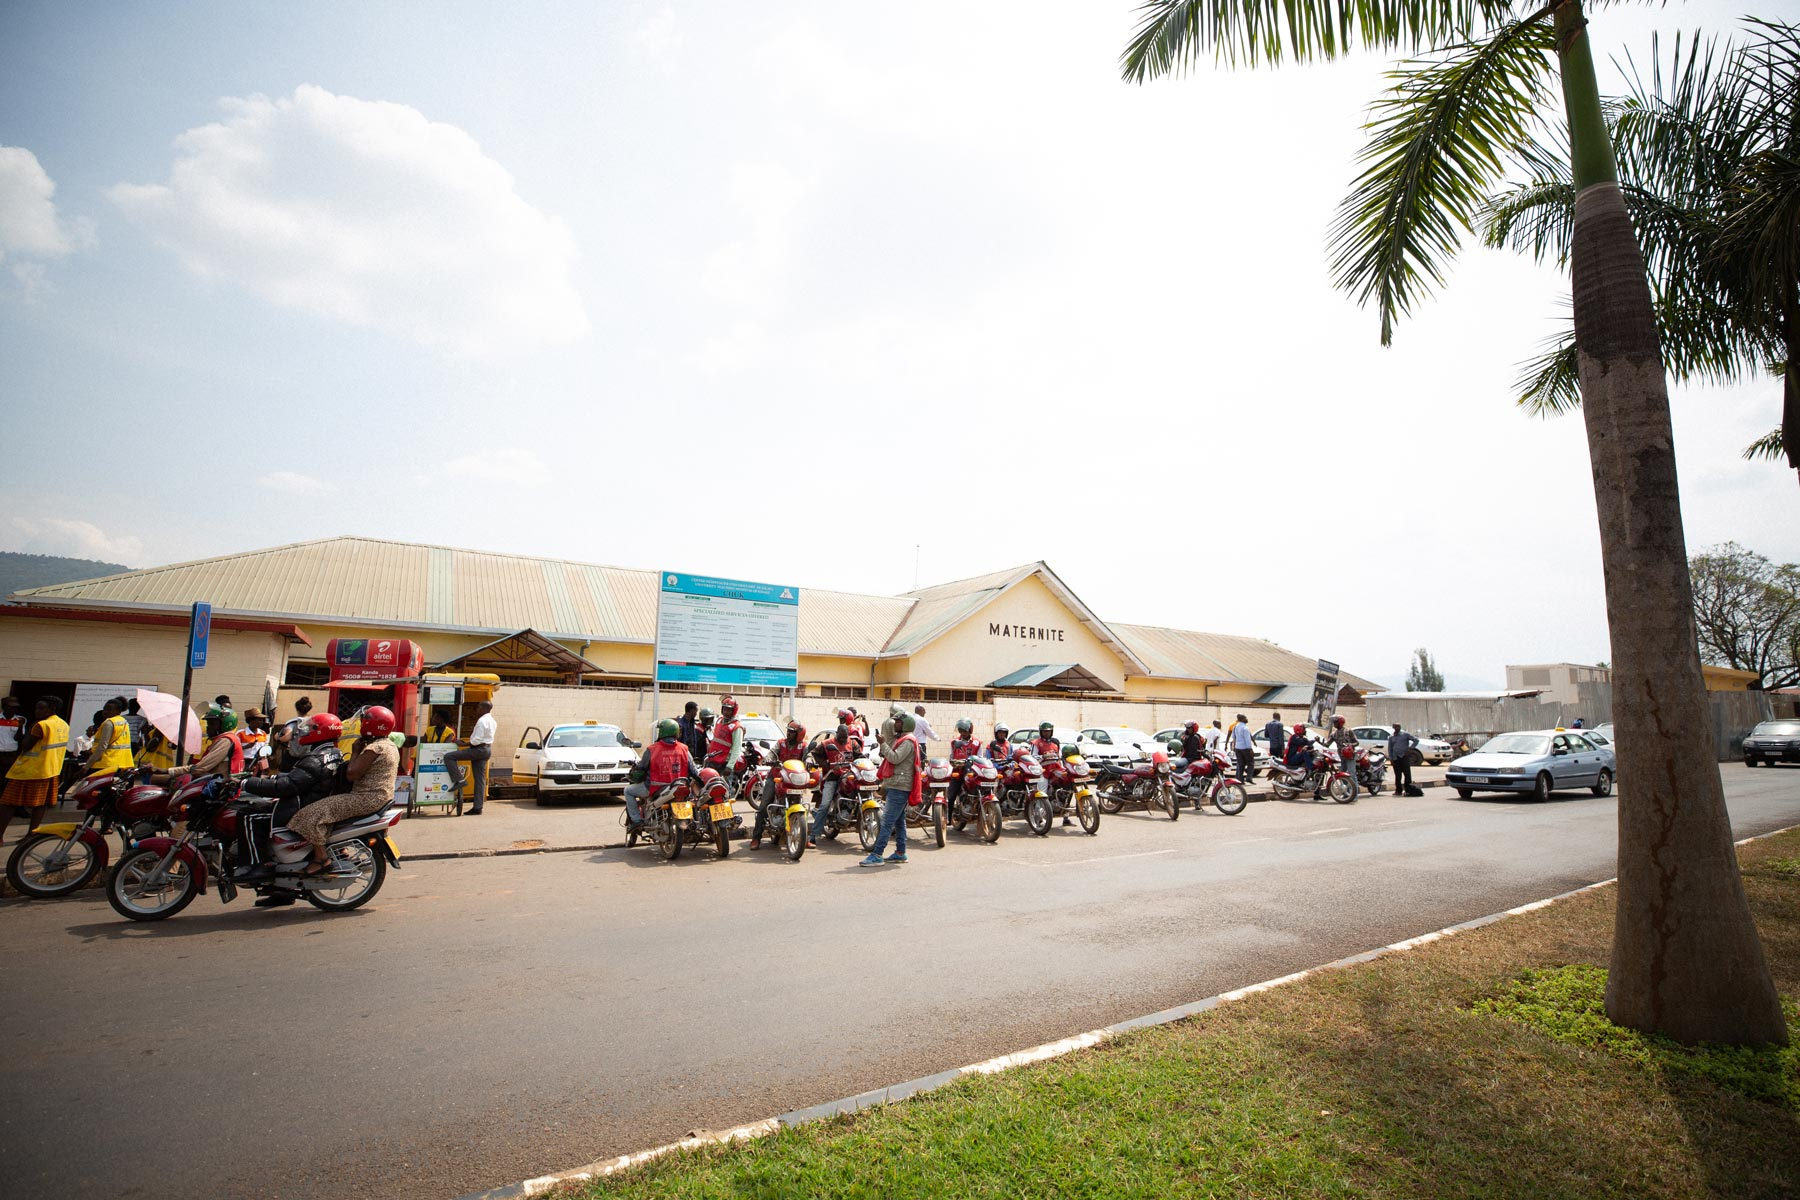 The hospital in Kigali, Rwanda where Dr. Shenoi provided training, with tons of scooters and motorcycles out front.